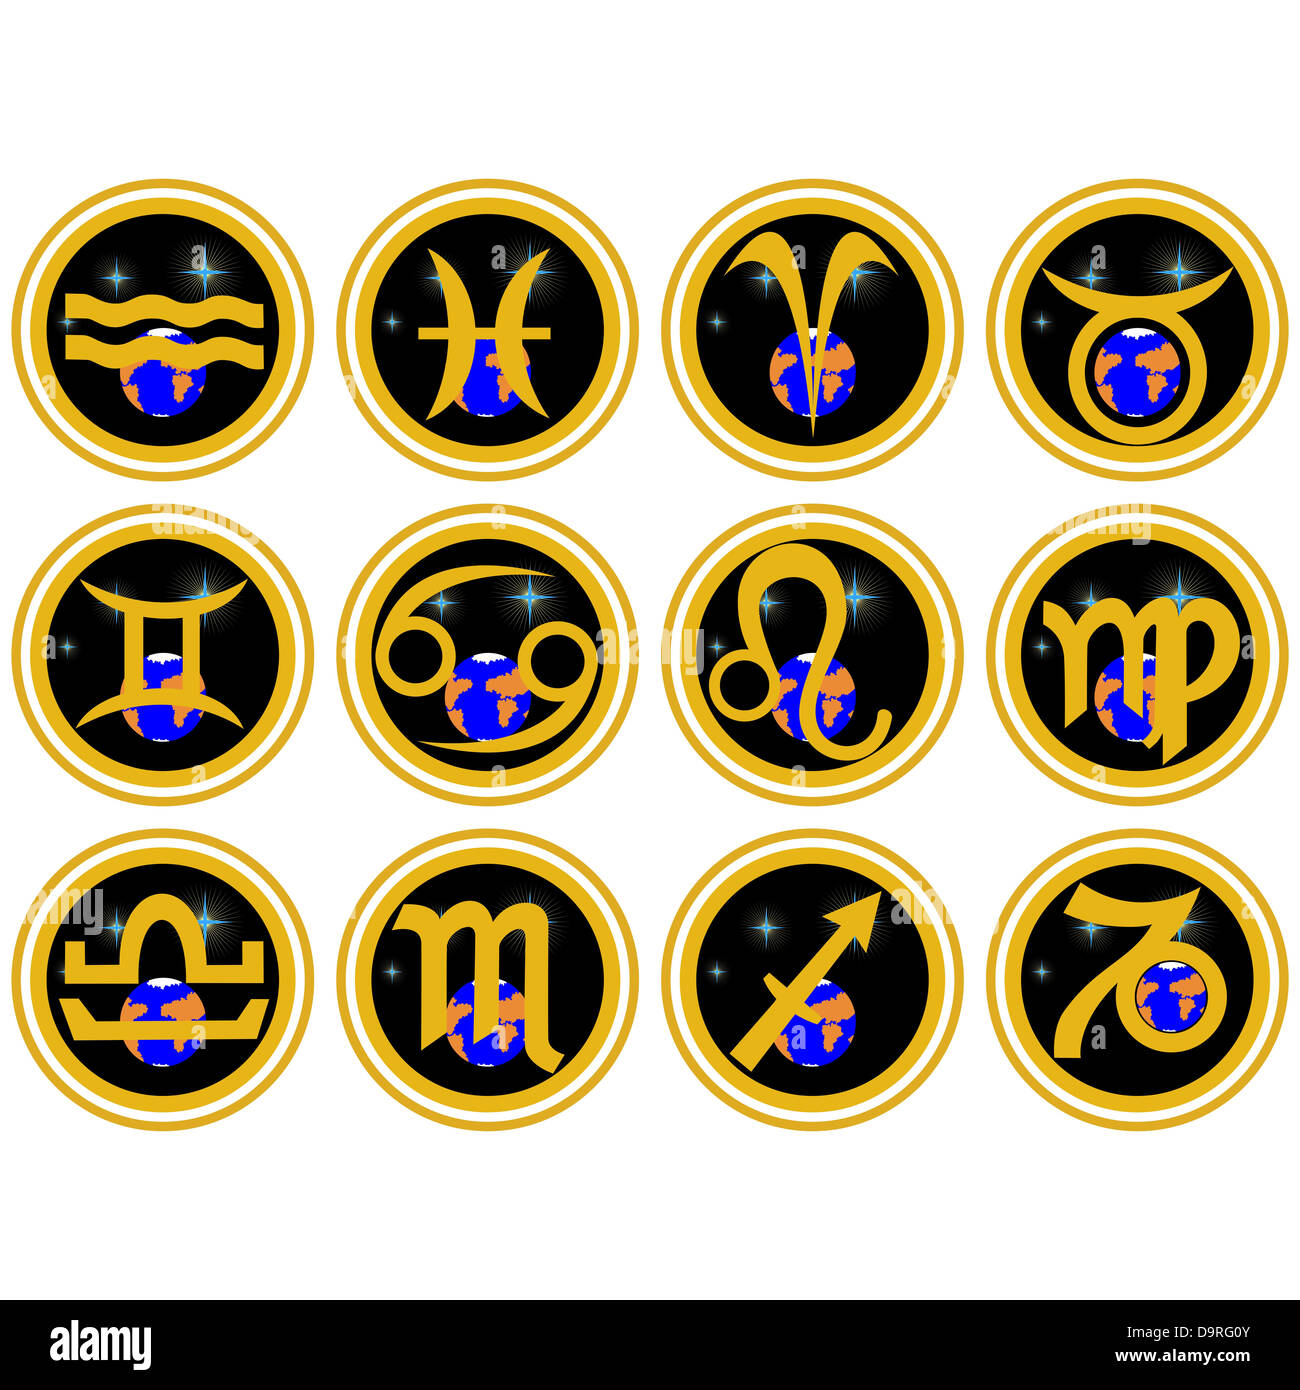 Signs of the Zodiac constellations. The illustration on a white background. - Stock Image